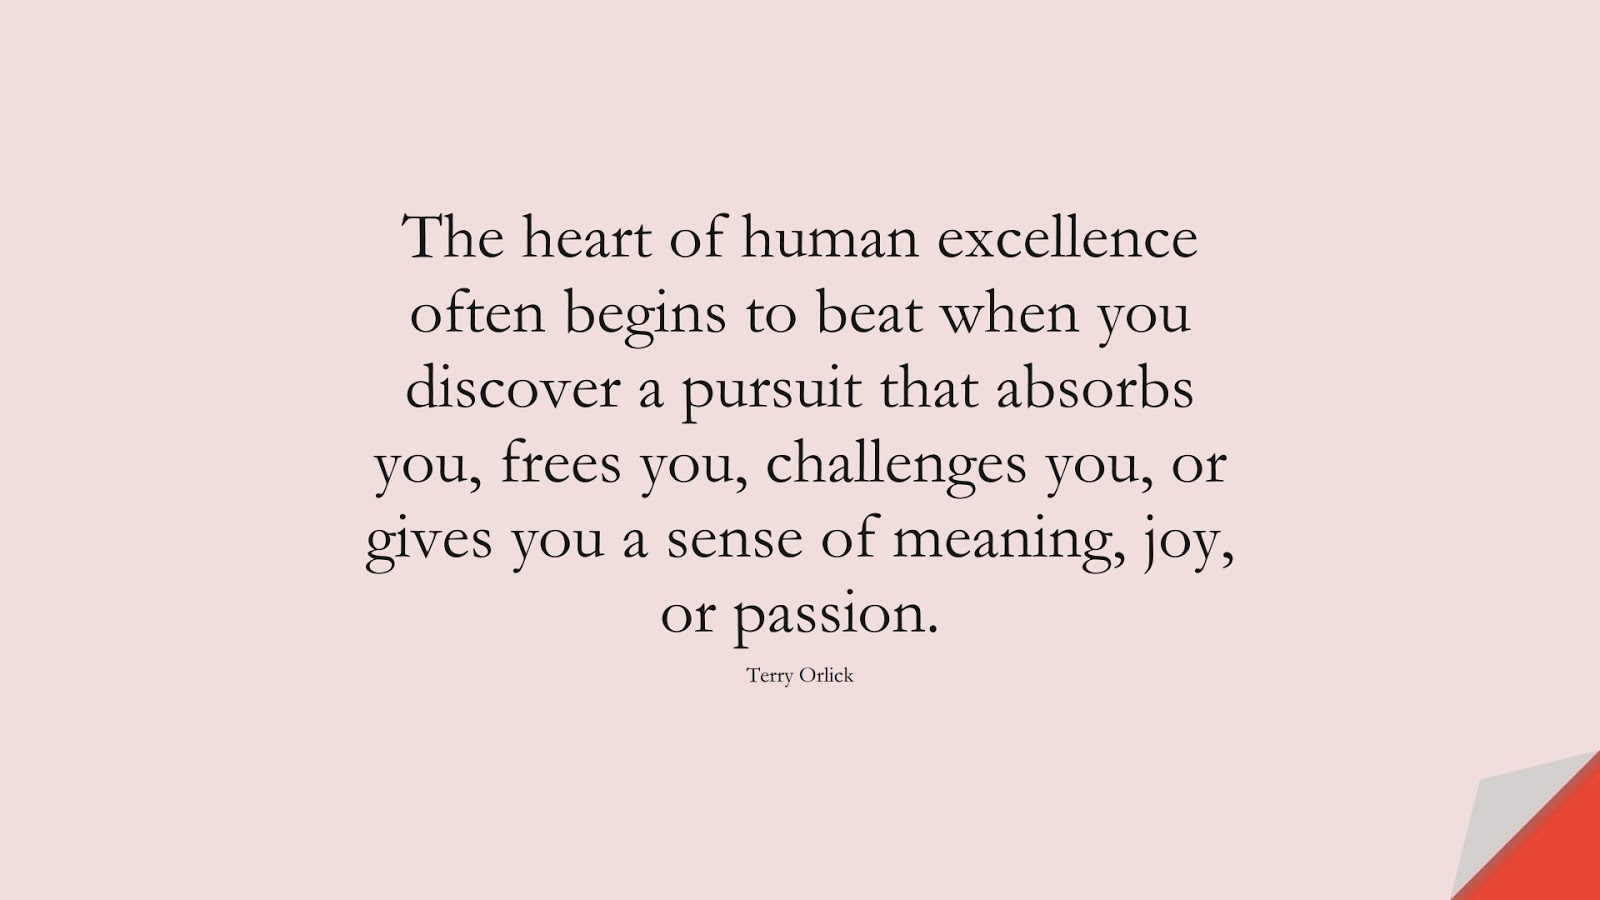 The heart of human excellence often begins to beat when you discover a pursuit that absorbs you, frees you, challenges you, or gives you a sense of meaning, joy, or passion. (Terry Orlick);  #LifeQuotes